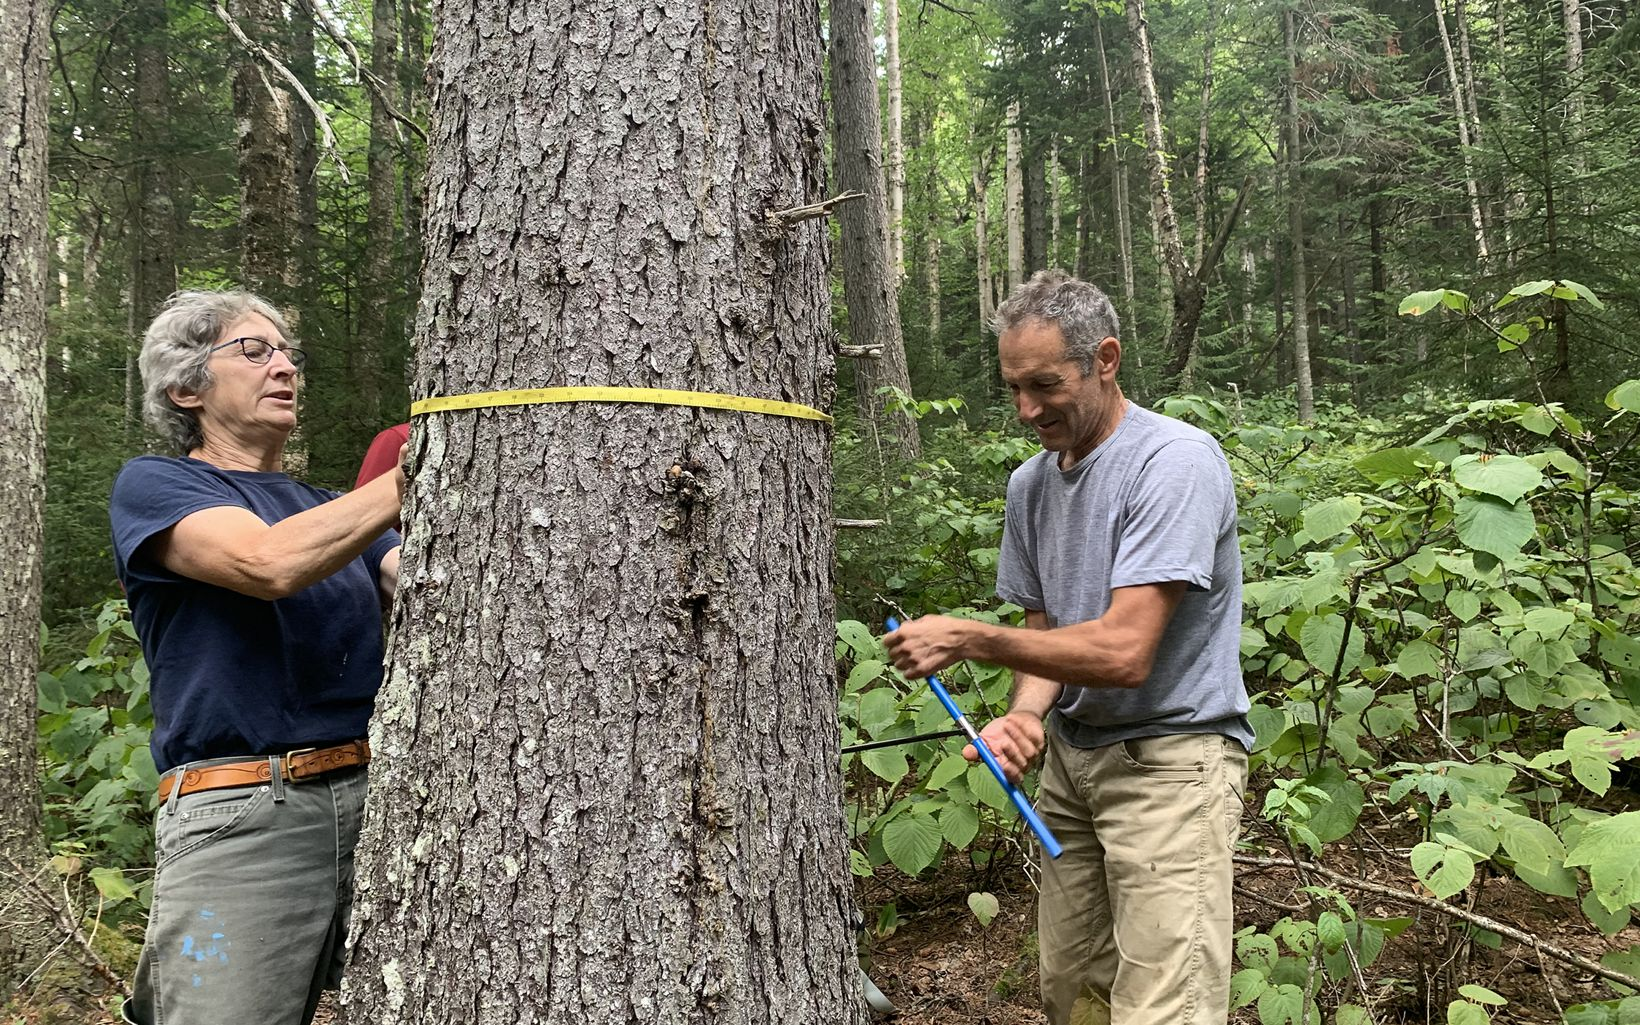 a woman holds a tape measure around a tree while a man on the opposite side turns a core sampler into the tree.